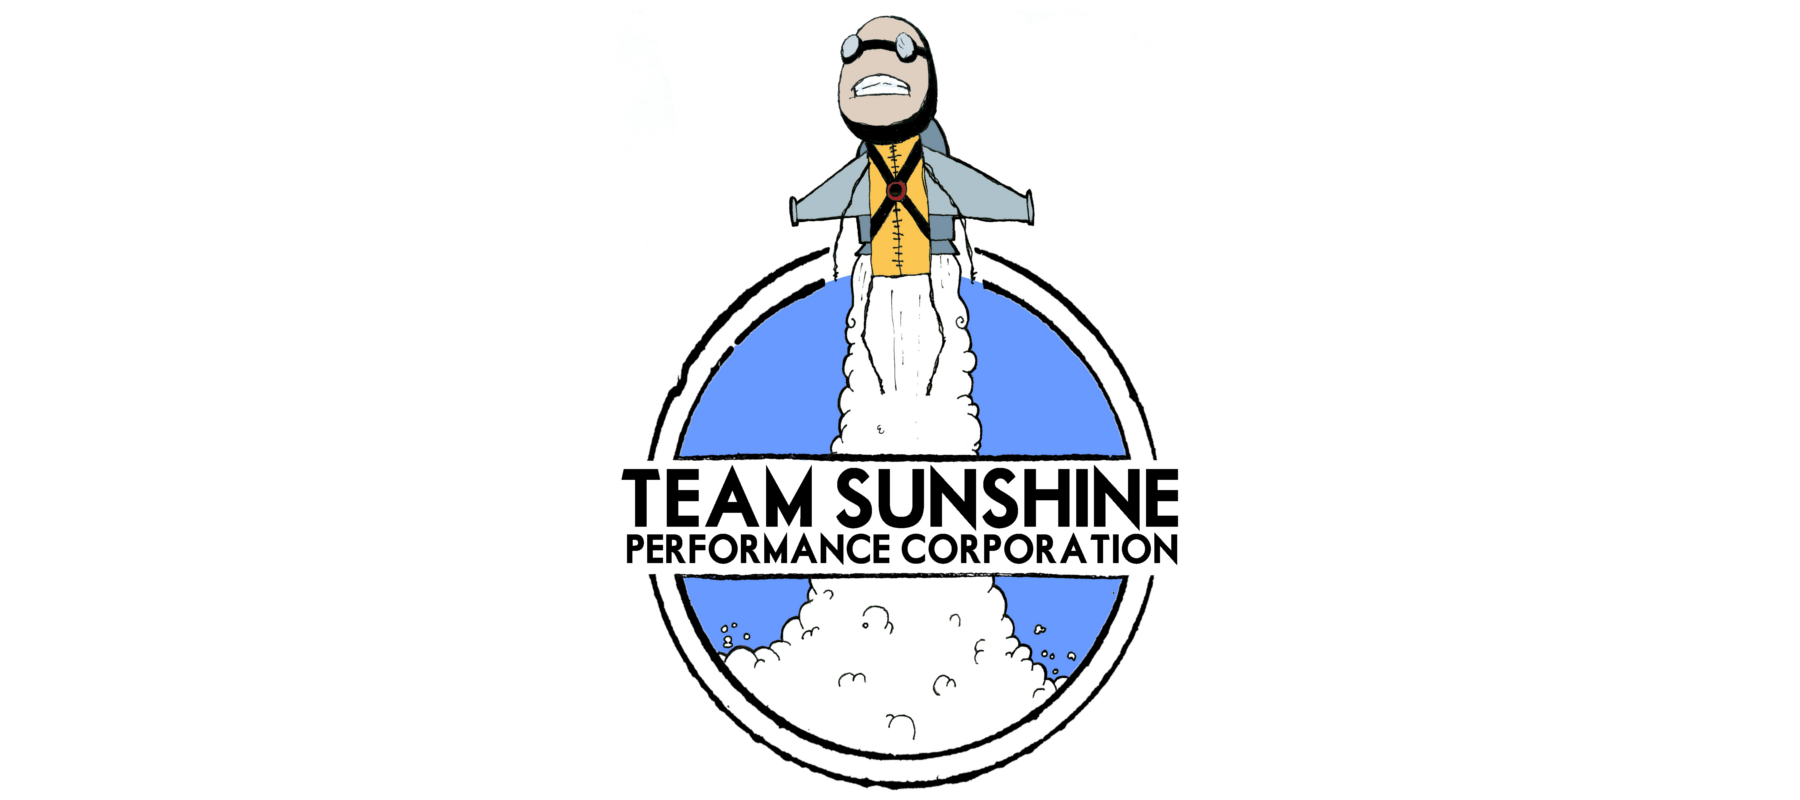 Team Sunshine Performance Corporation